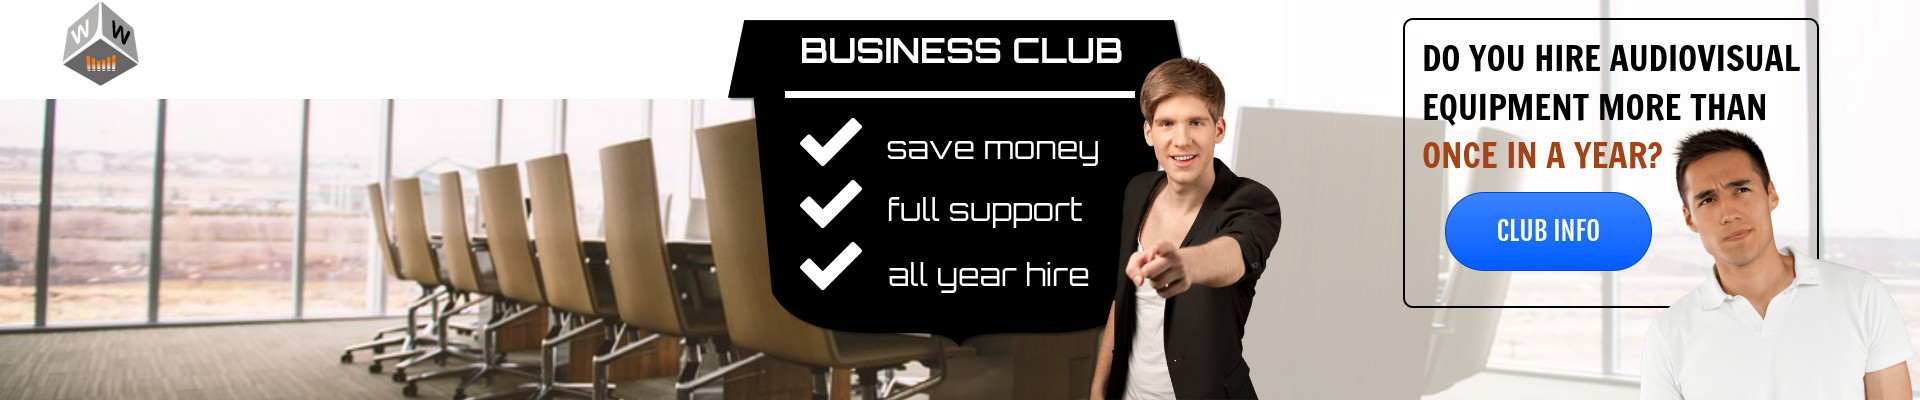 business club speaker hire